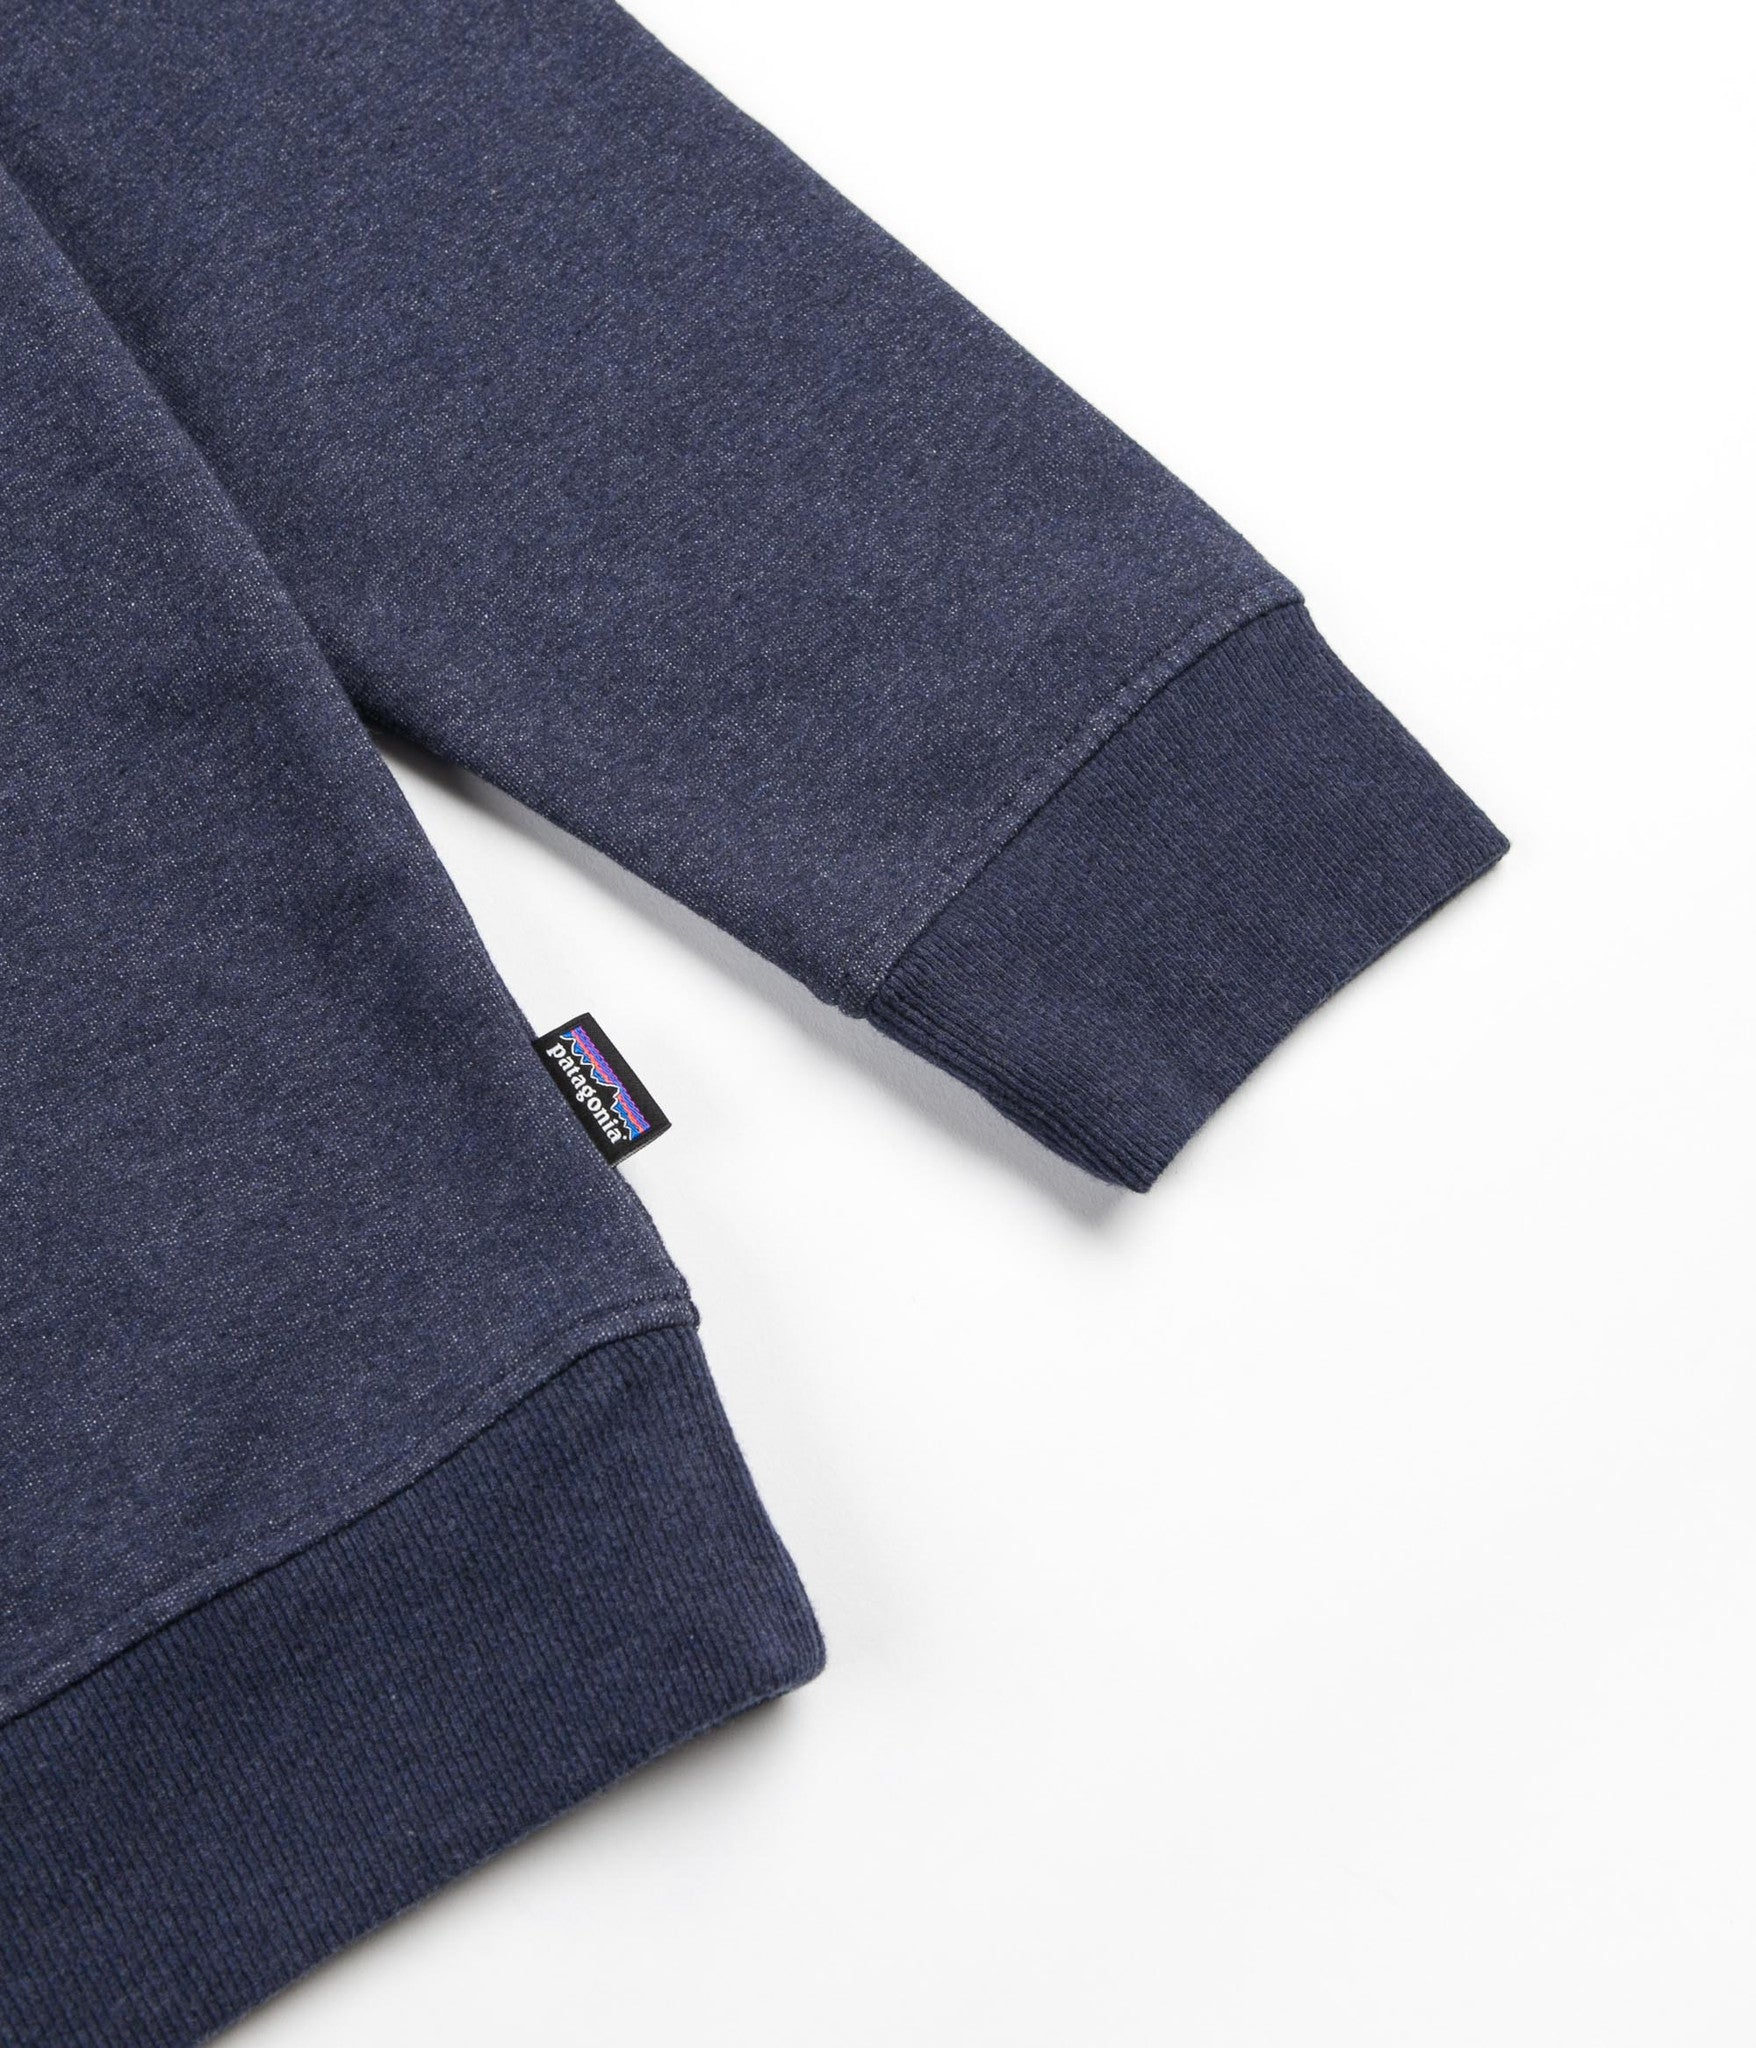 Patagonia P-6 Label Crewneck Sweatshirt - Navy Blue